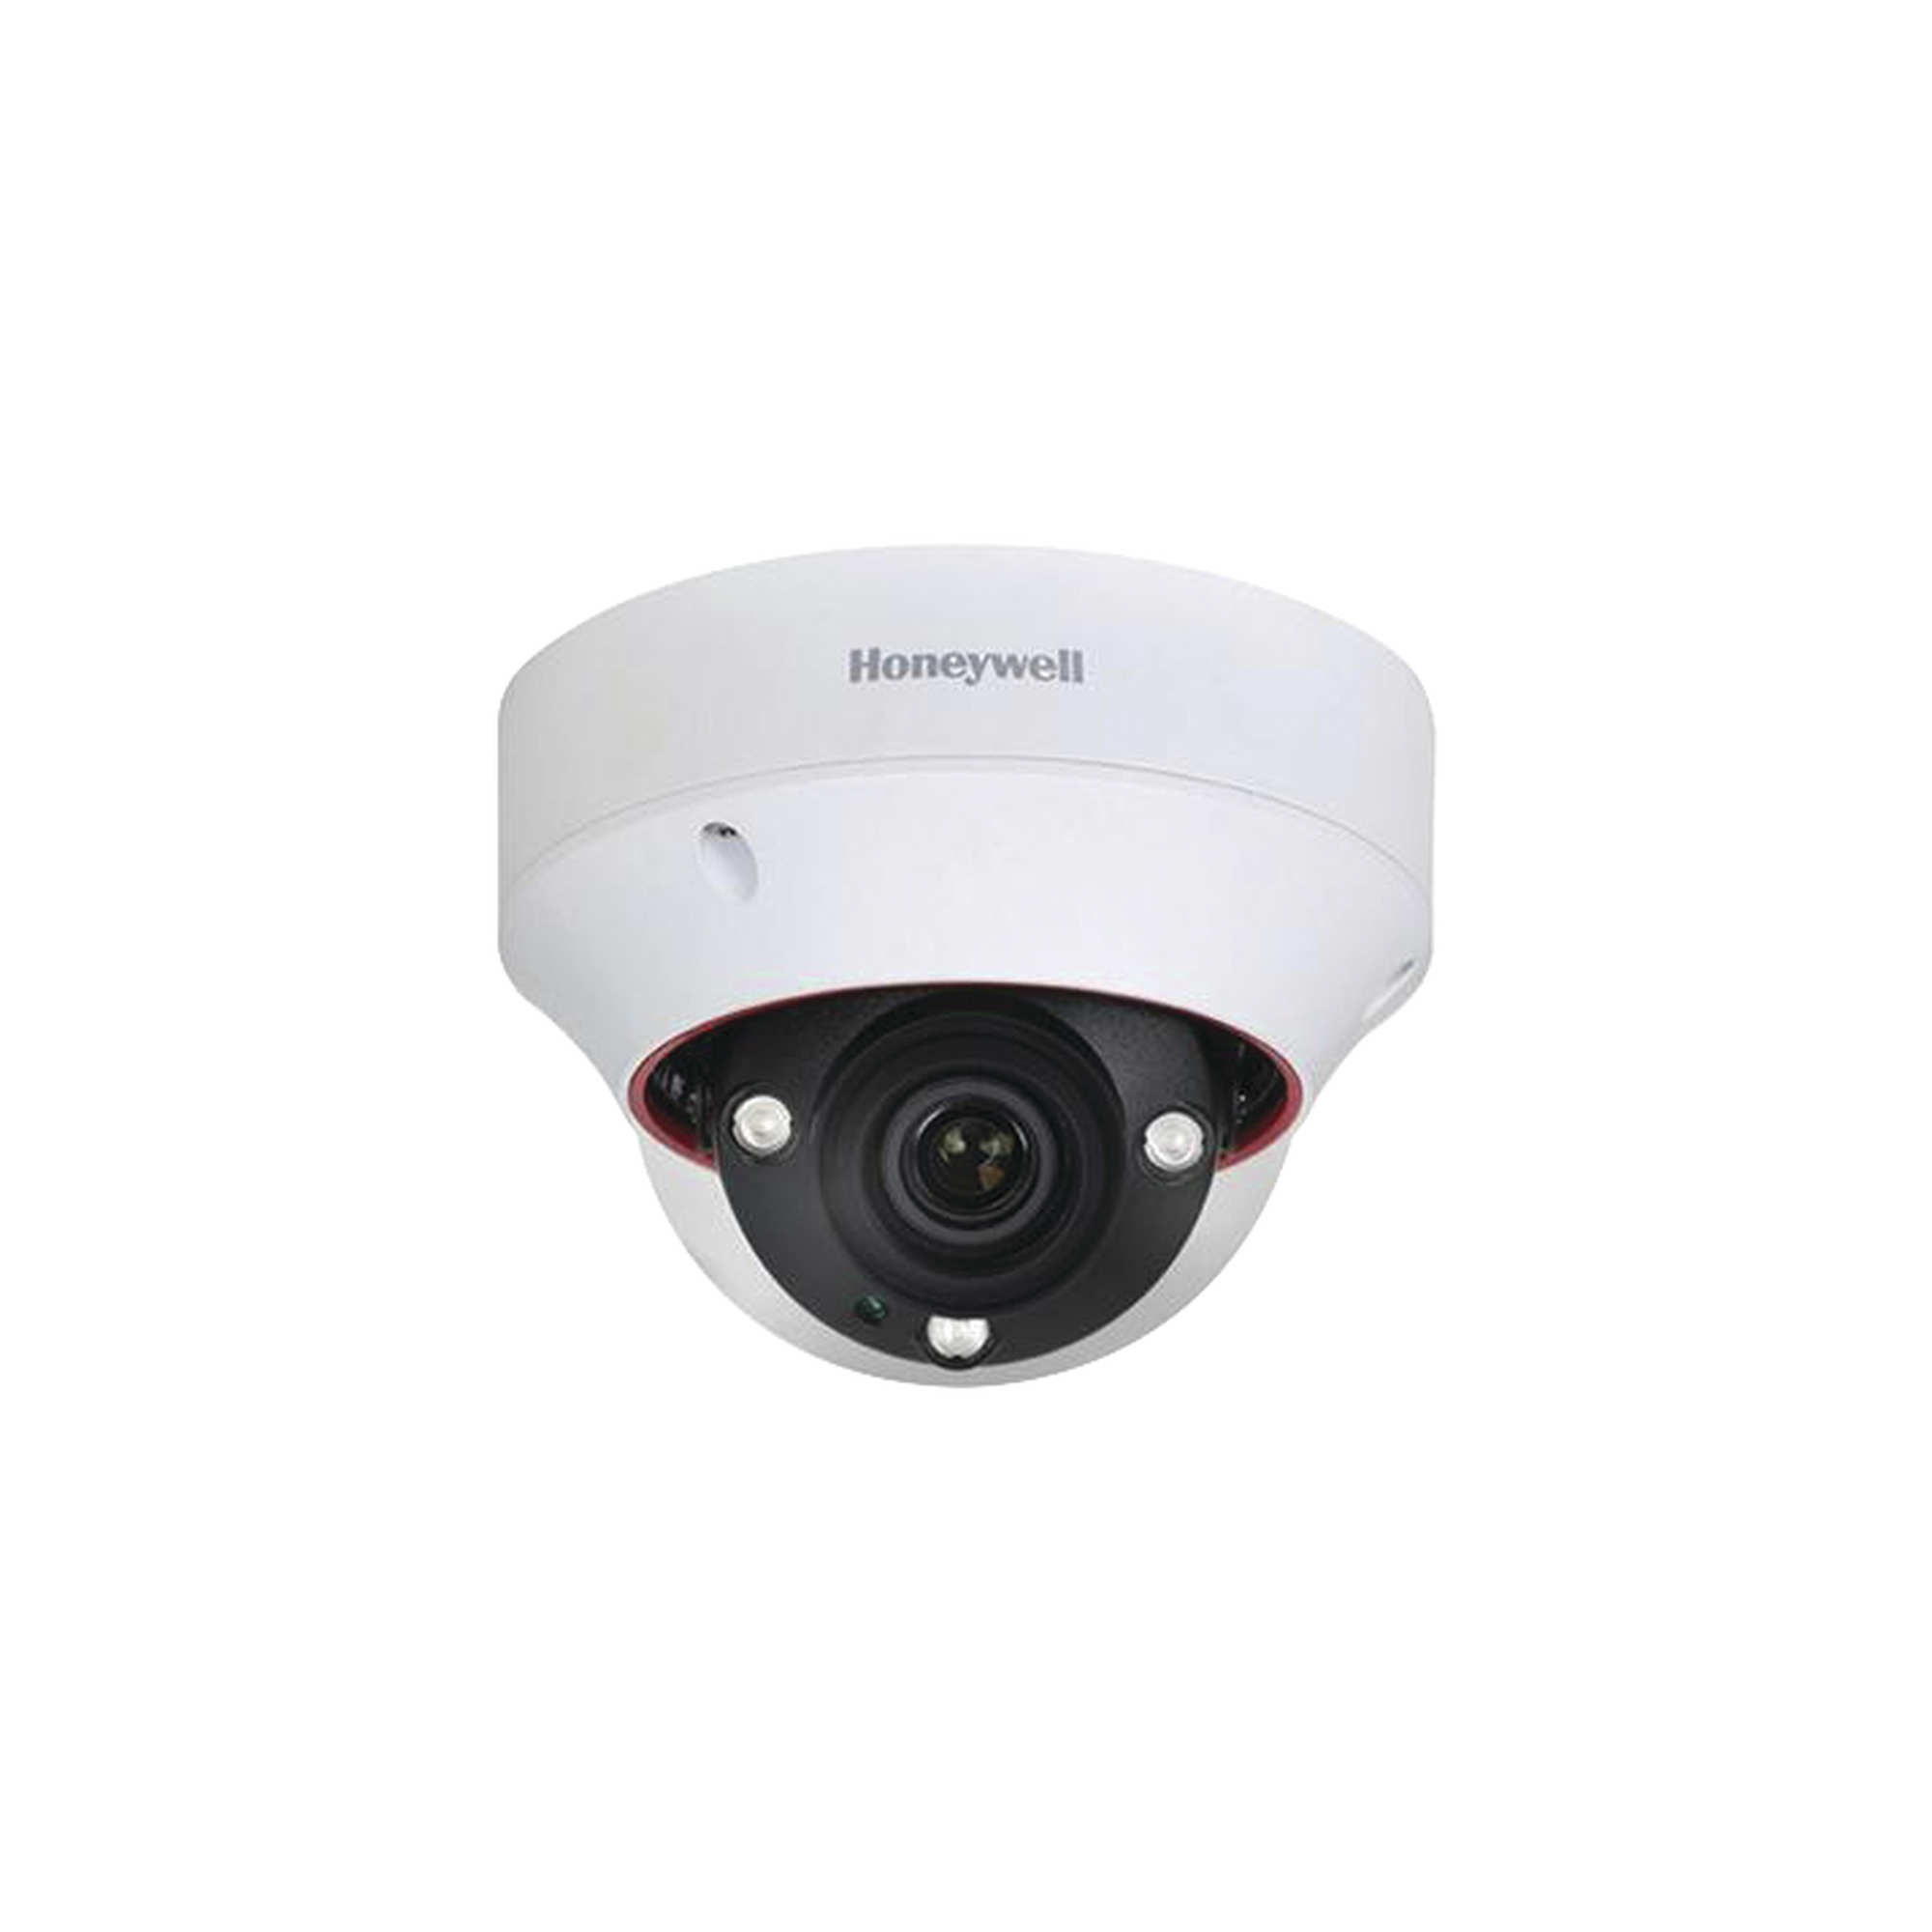 Domo IP 4MP, Low/Light, WDR 120dB, IP67, IK10, 2.7 A 13.5 mm Lente Motorizado, IR, POE, H265